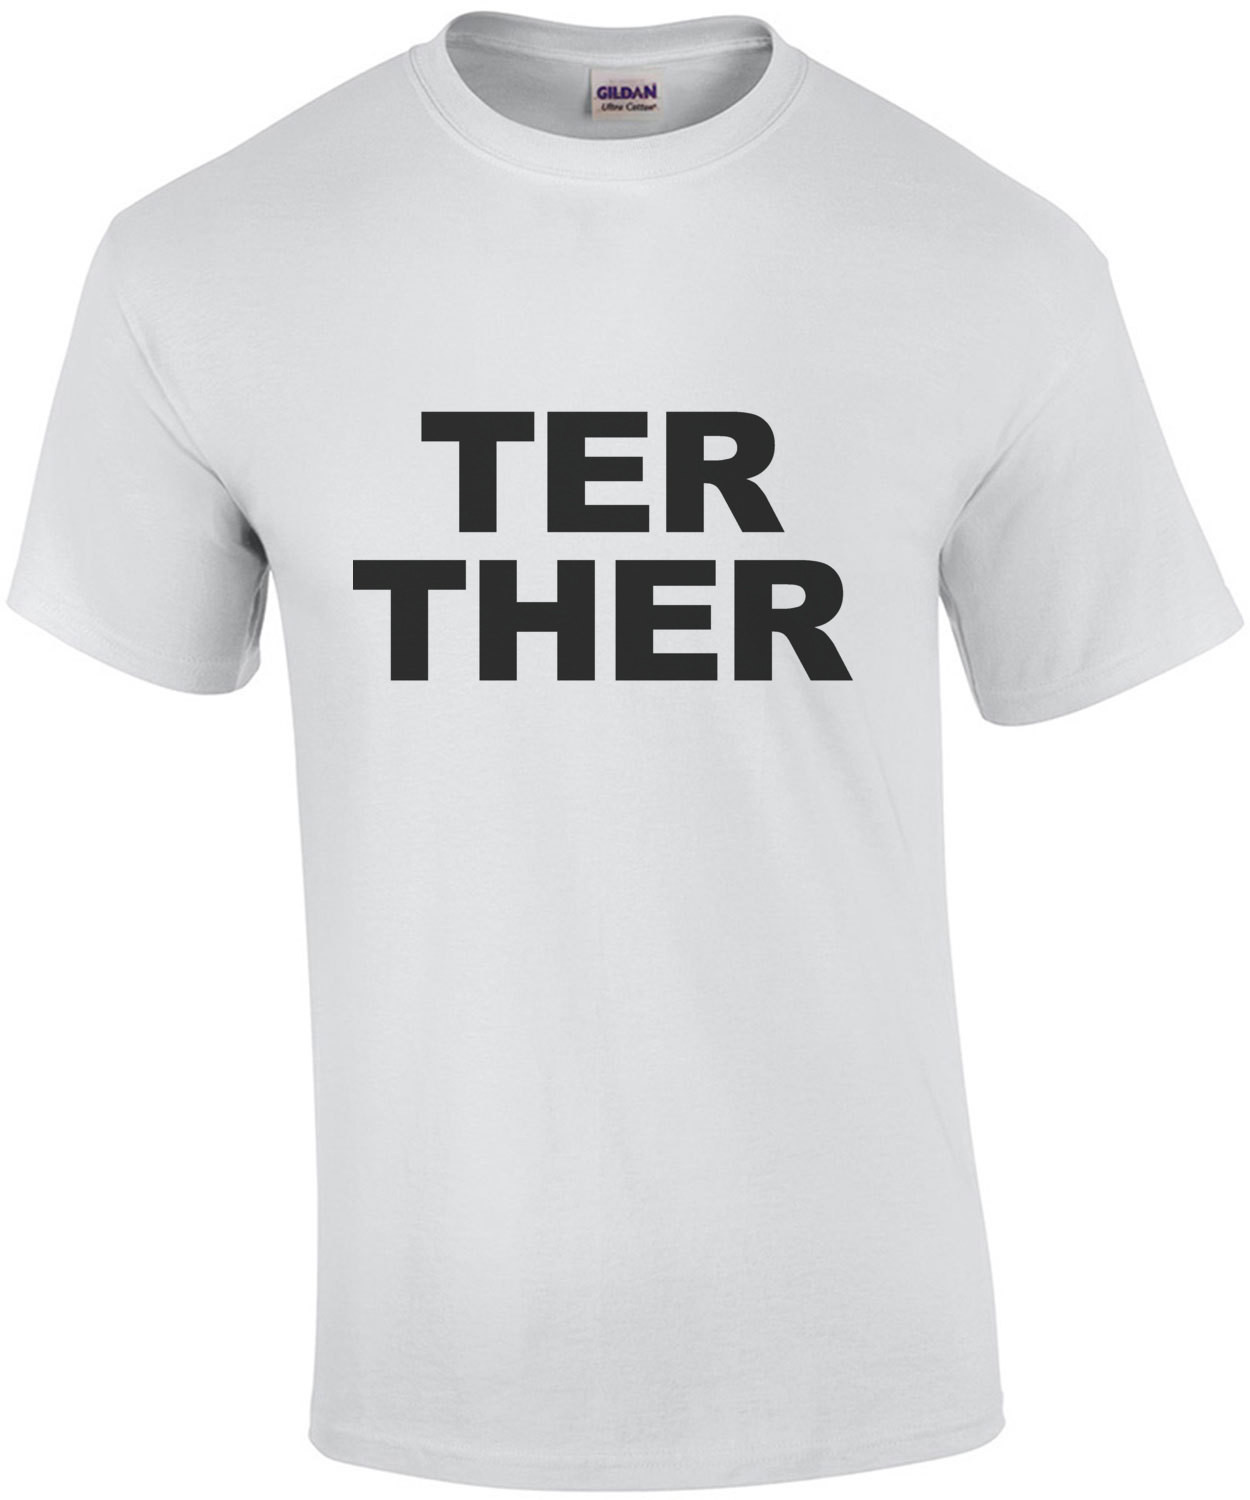 'TER THER' Better Together Part 2 - couples T-Shirt